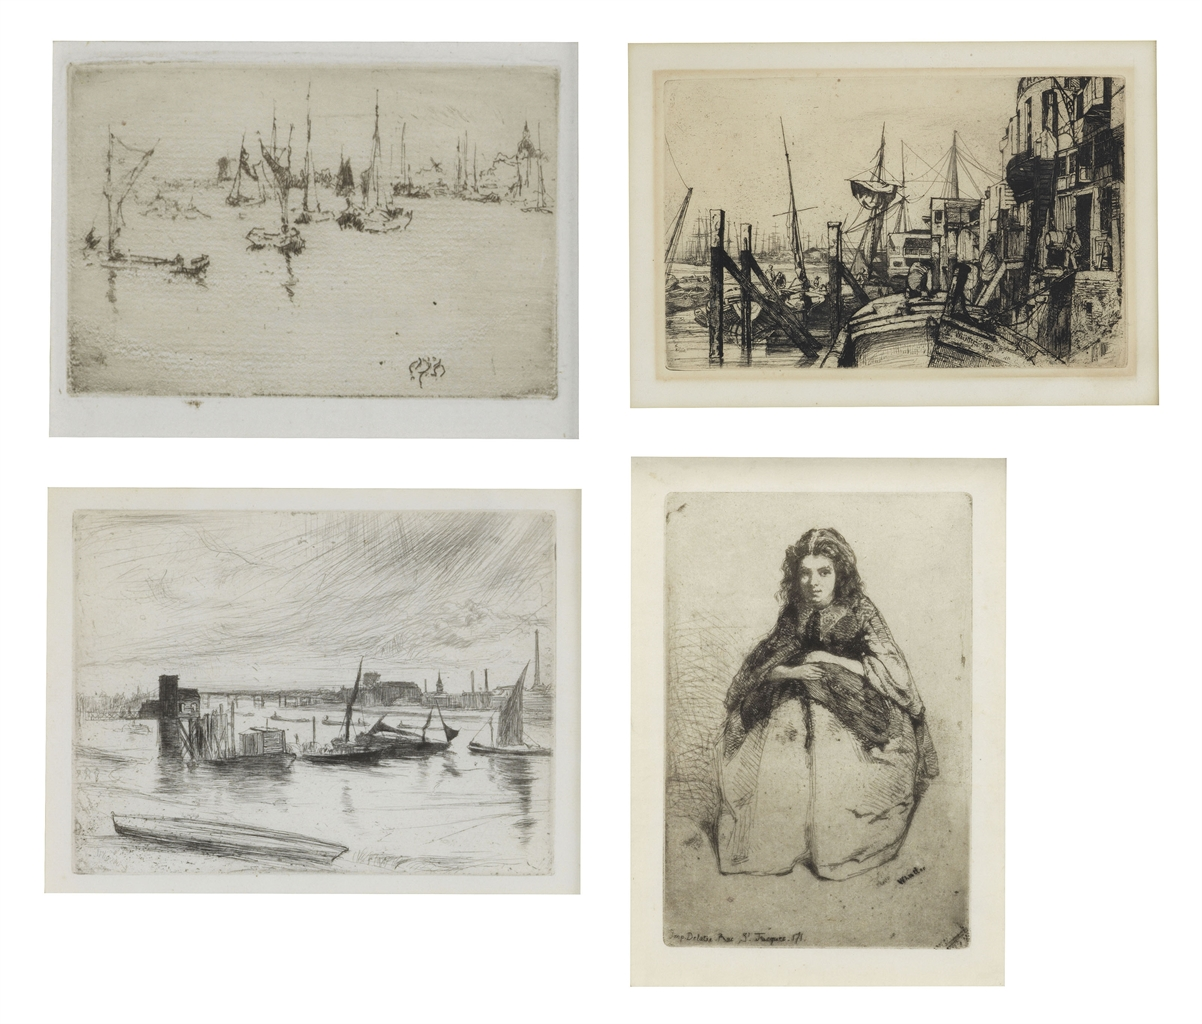 James Abbott McNeill Whistler-A Group of Four Etchings (Fumette (G. 12); Limehouse, from: The Thames Set (G. 48); Battersea Dawn 'Cadogan Pier' (Early Morning Battersea), from: The Thames Set (G. 96); Barges, Dordrecht (Boats, Dordrecht) (G. 262))-1886